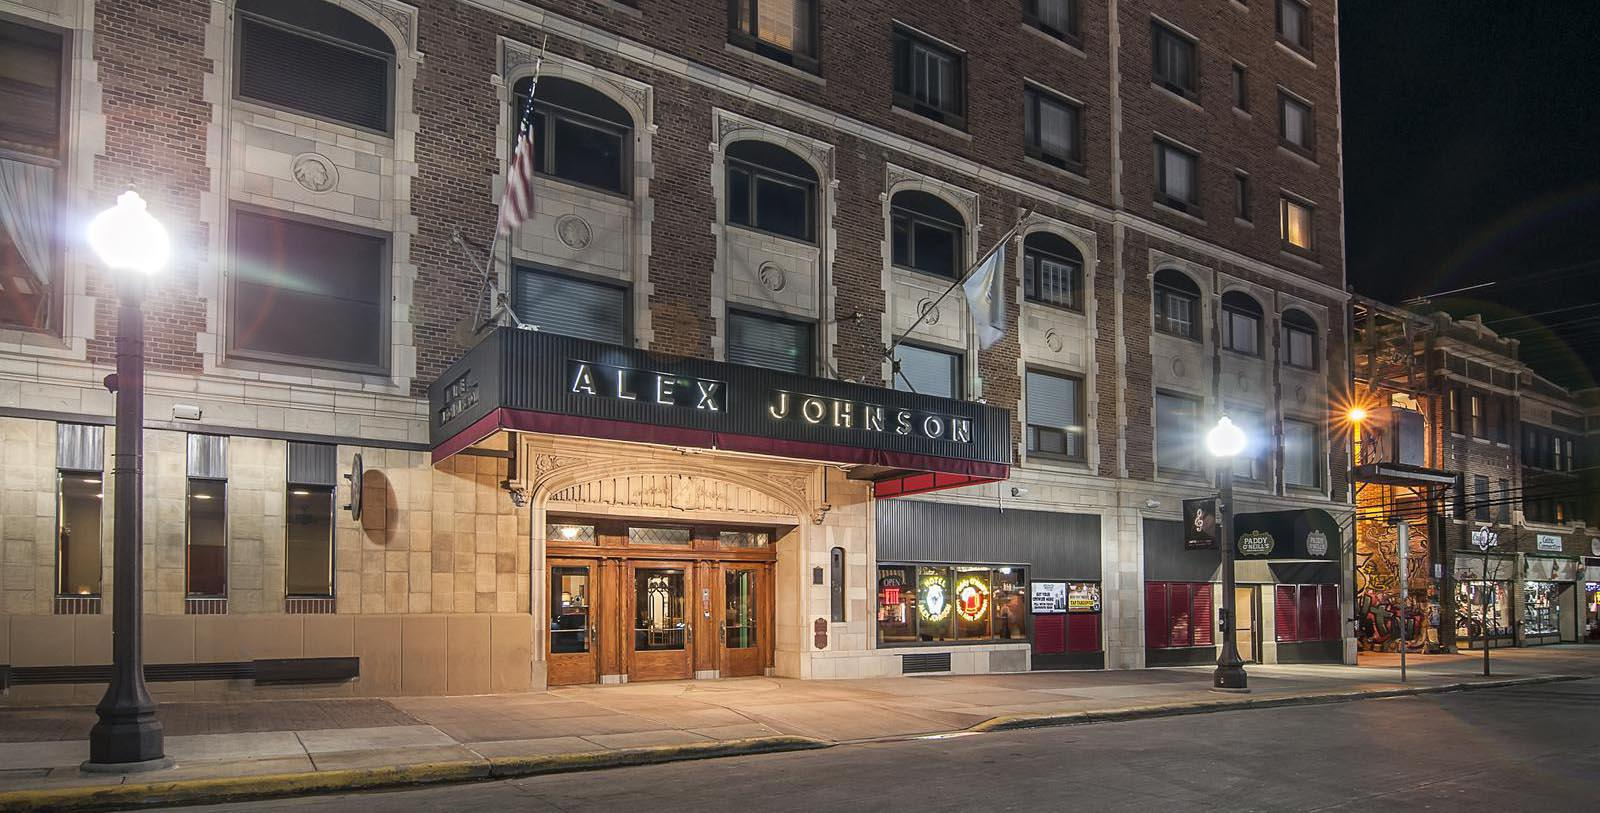 Image of Hotel Exterior, Hotel Alex Johnson in Rapid City, South Dakota, 1928, Member of Historic Hotels of America, Special Offers, Discounted Rates, Families, Romantic Escape, Honeymoons, Anniversaries, Reunions